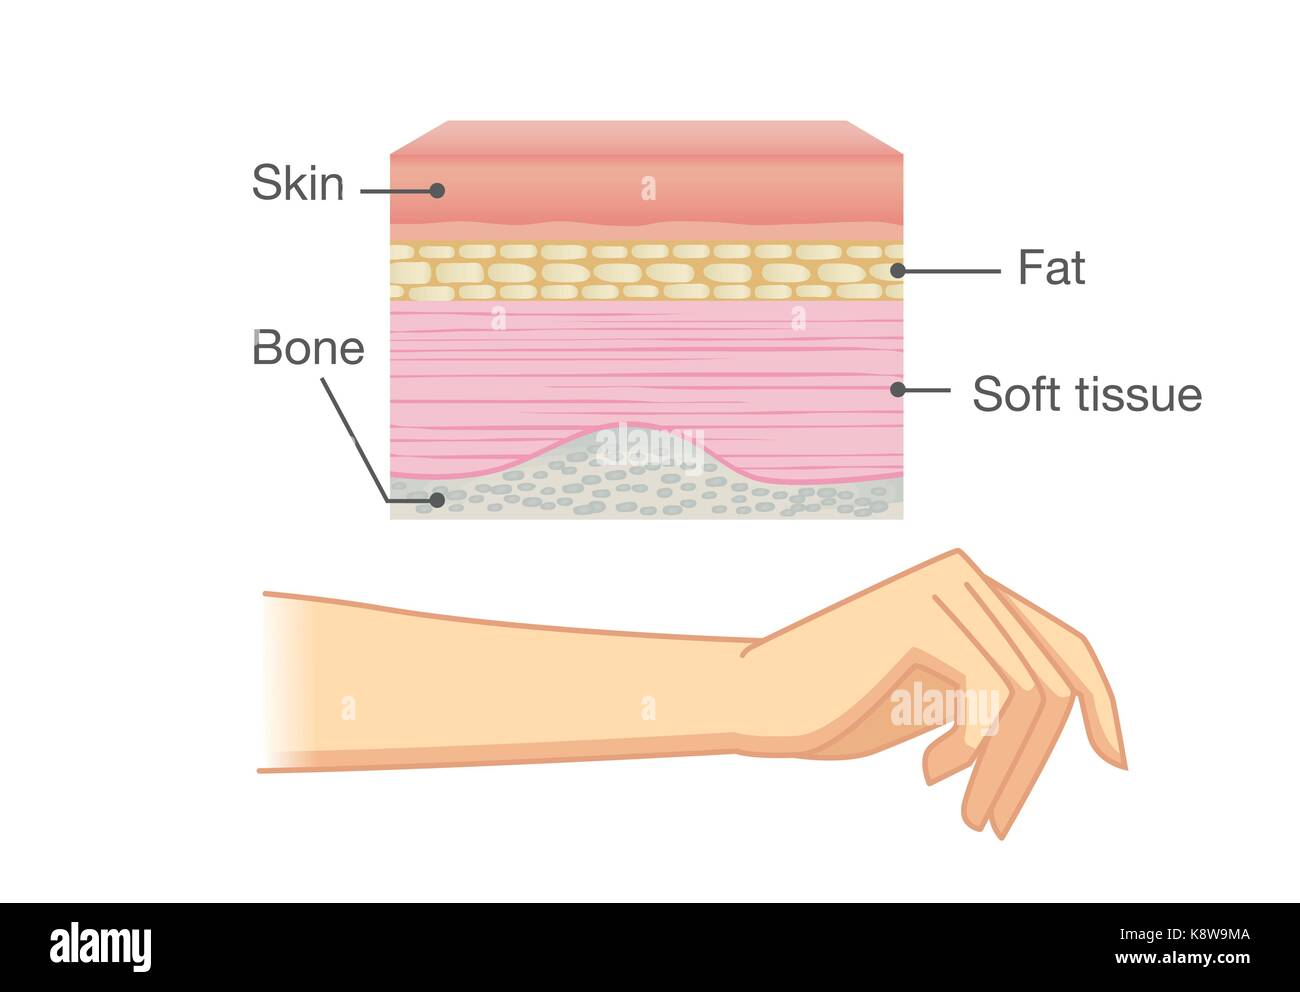 Human Skin Anatomy Diagram Stock Photos Human Skin Anatomy Diagram